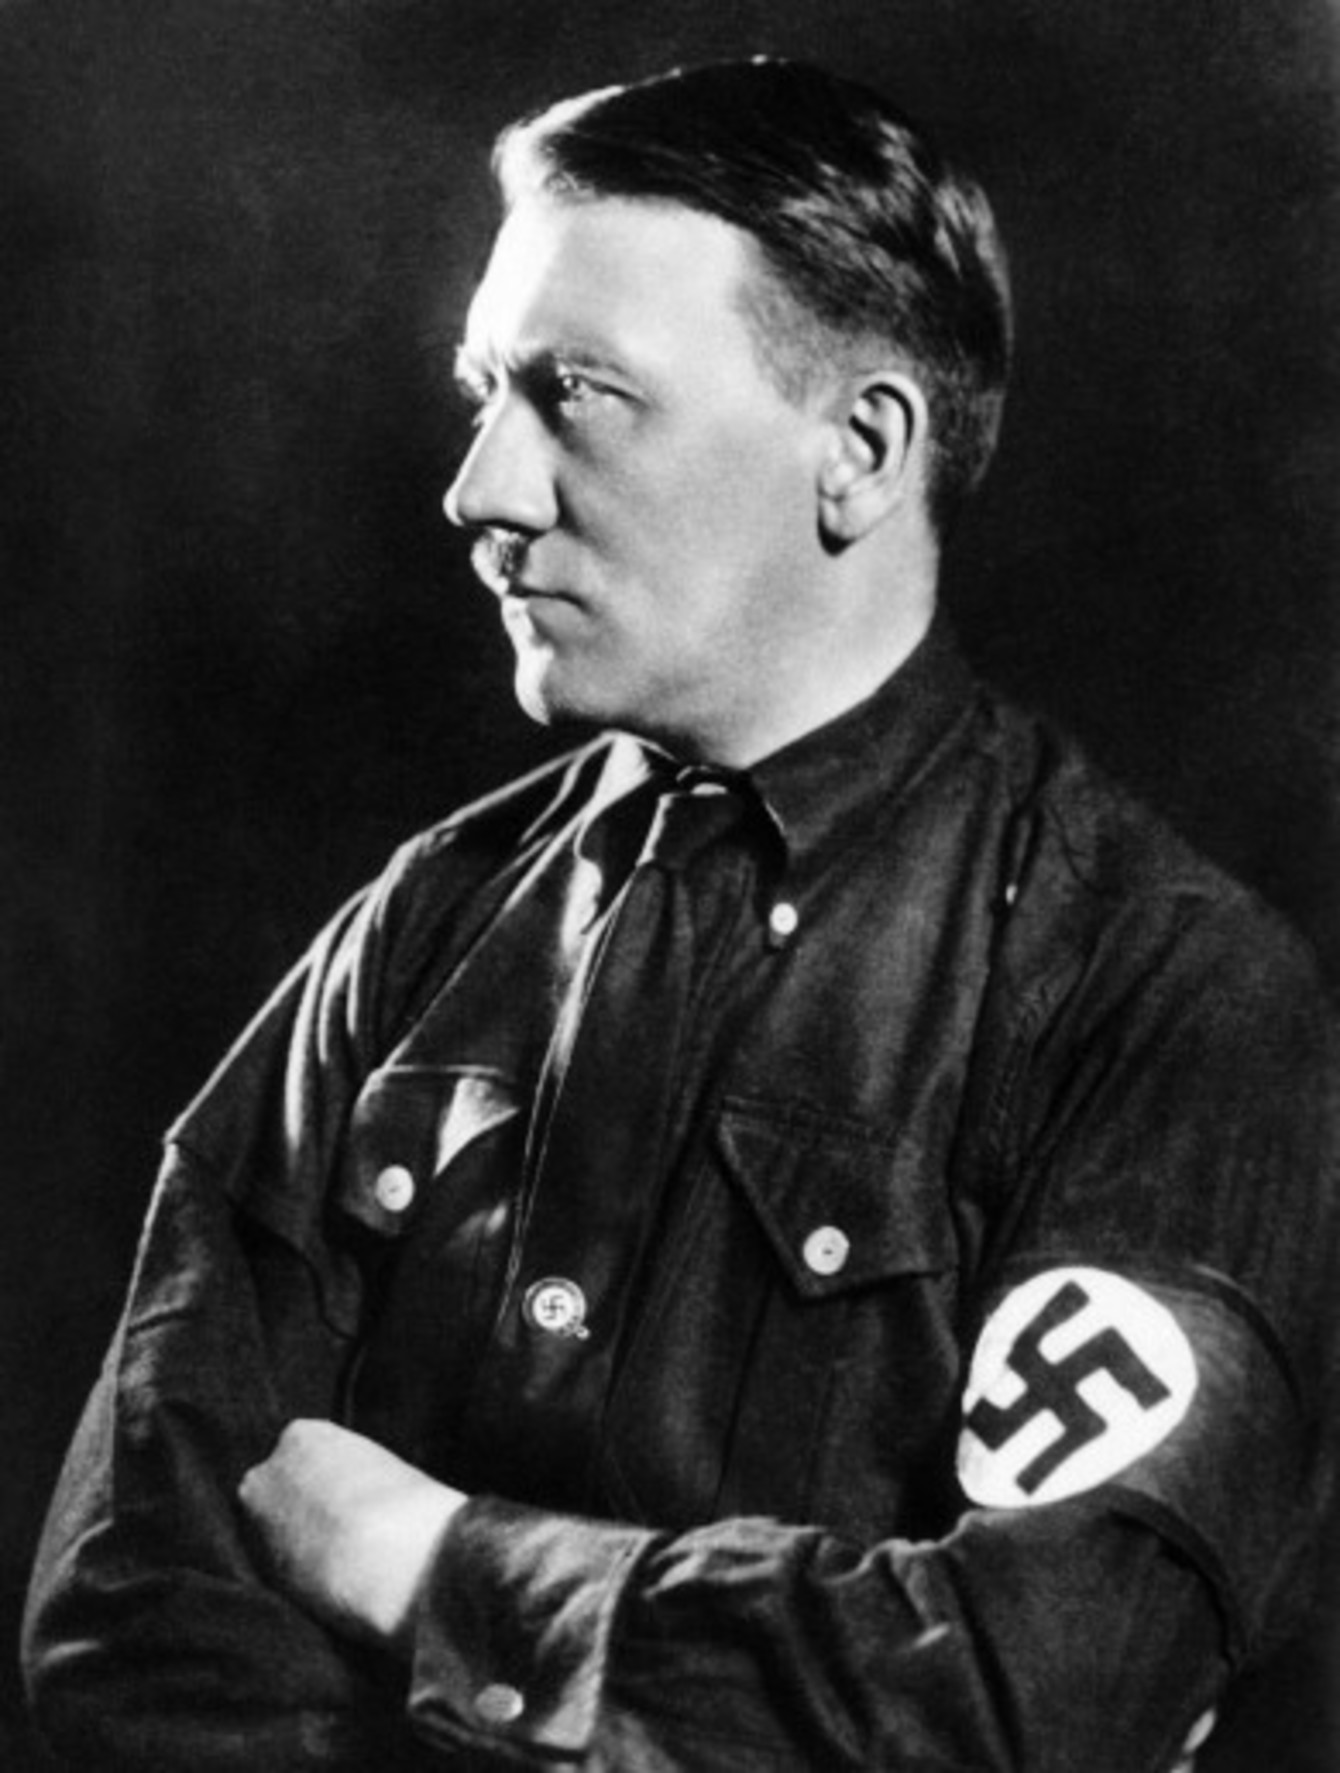 Surprising Anger As Man Professes Admiration For Hitler On Irish Radio Birthday Cards Printable Riciscafe Filternl